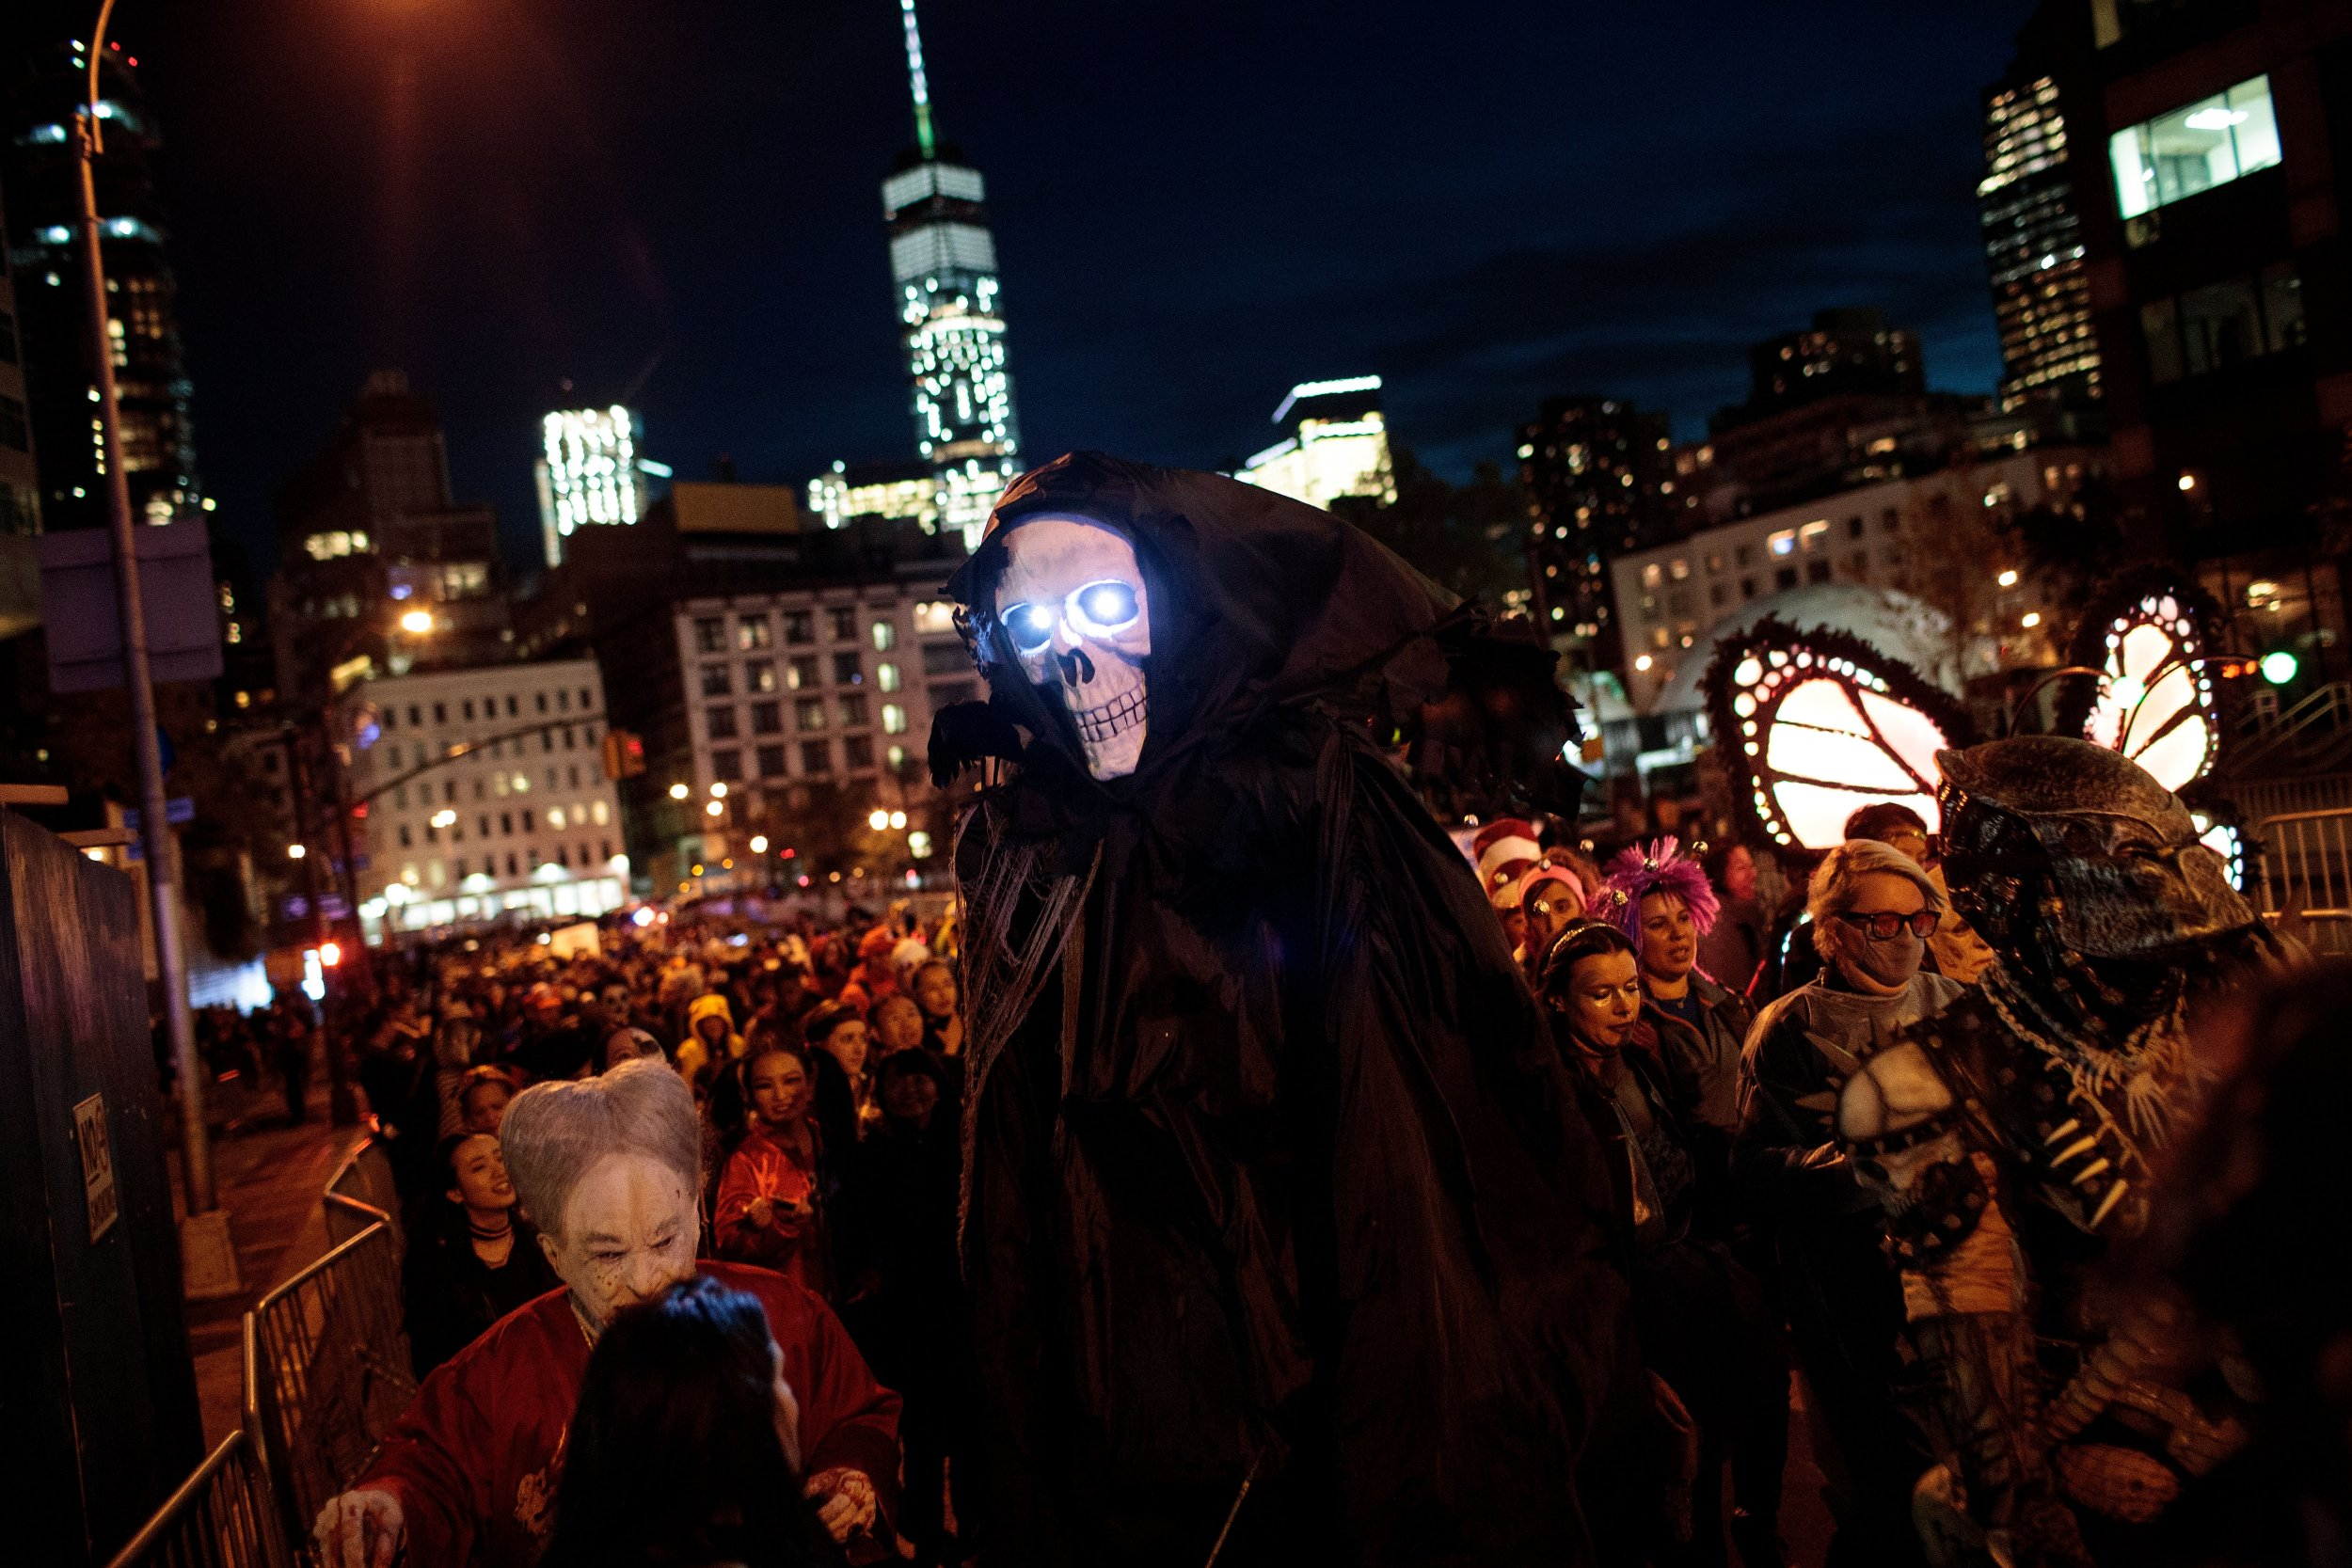 Nyc Halloween Parade 2020 Map NYC Village Halloween Parade 2018: Route Map, Viewing Spots and TV